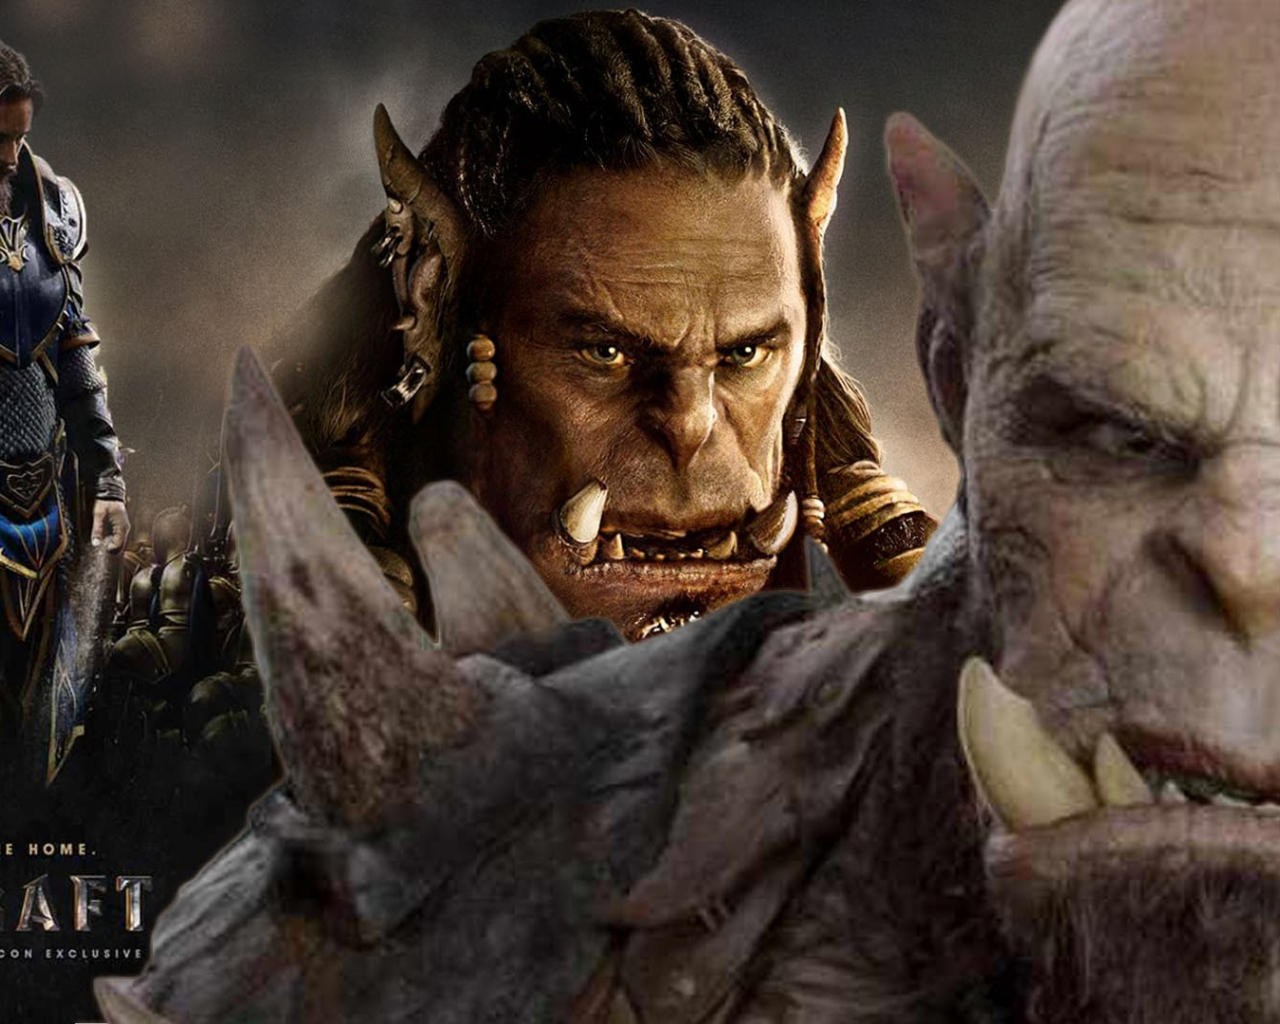 Free Download Warcraft Film 2016 Hd Wallpapers Download 1920x1080 For Your Desktop Mobile Tablet Explore 50 Warcraft Movie Wallpaper Warcraft Movie Wallpaper World Of Warcraft Movie Wallpaper Warcraft Wallpaper